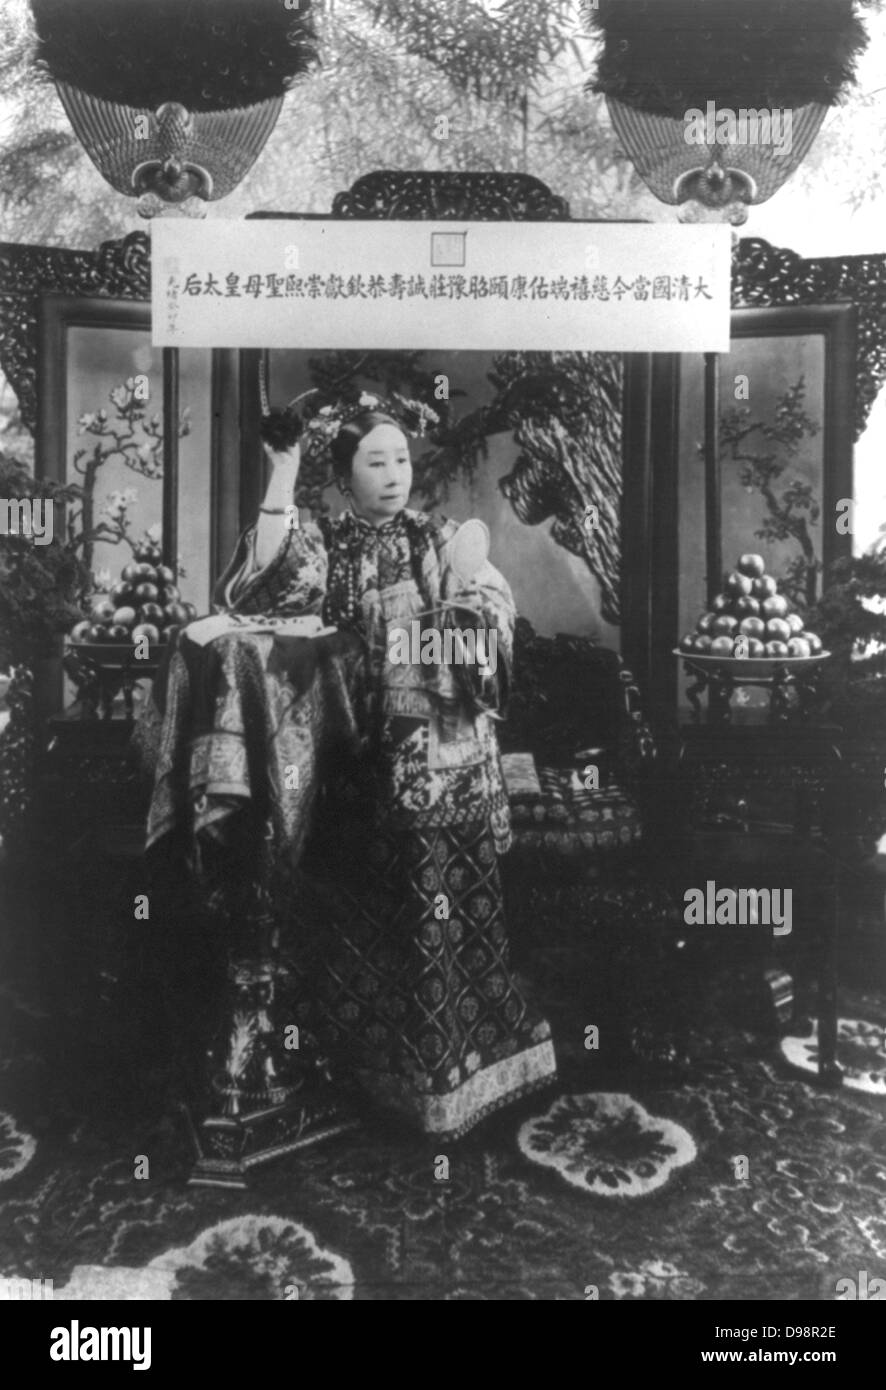 Dowager Empress Cixi (Xiao Qin Cian 1831-1908) from 1861 for nearly 40 years the de facto ruler of China. c1900. - Stock Image